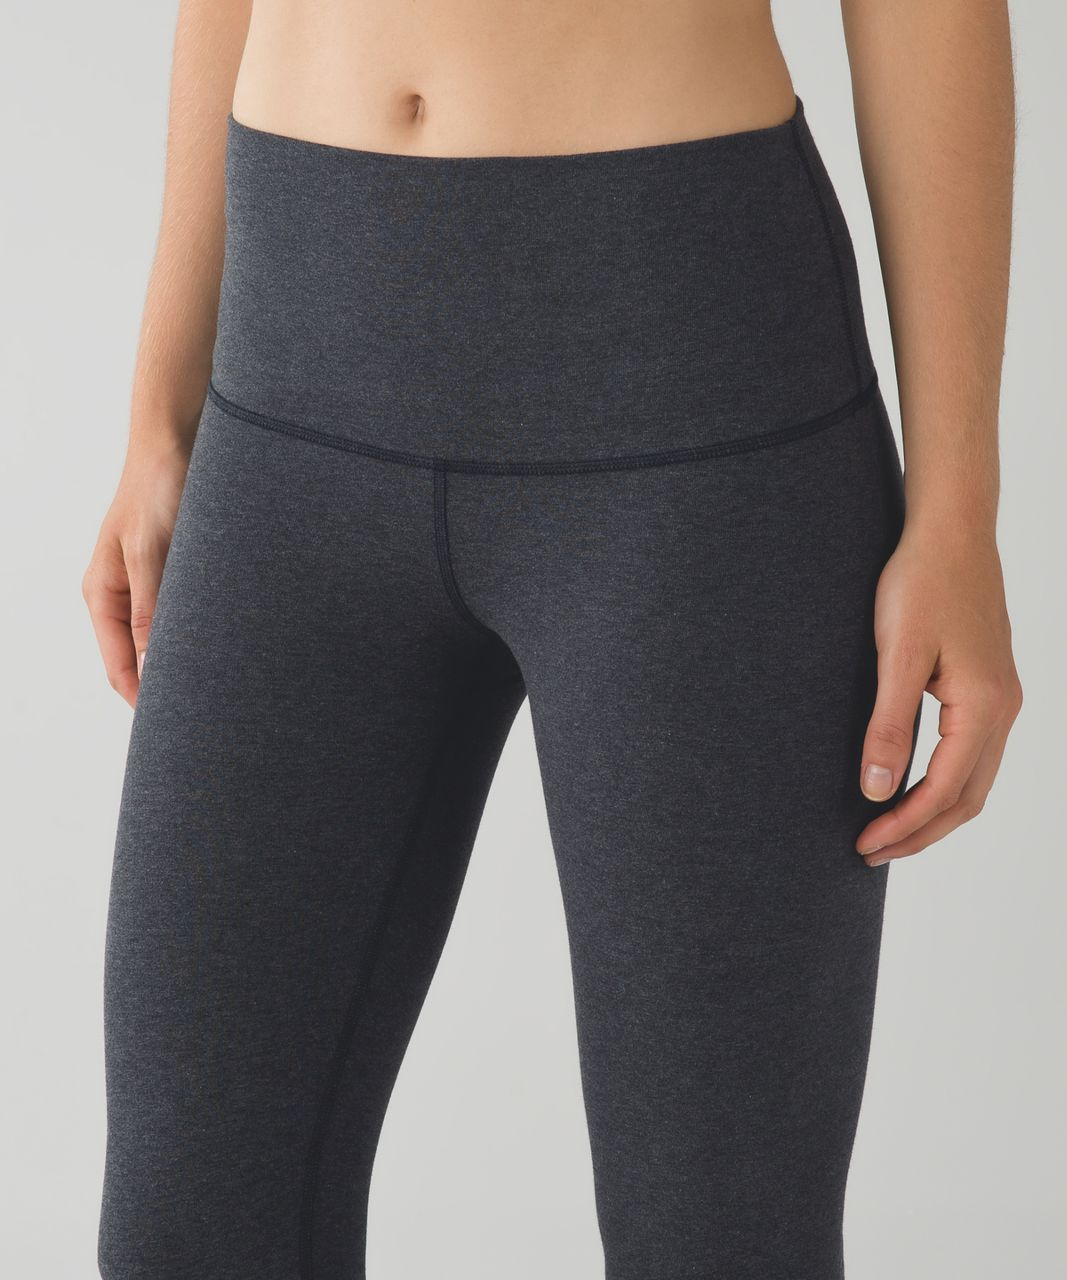 6eacc59b406a58 Lululemon Wunder Under Pant (Roll Down) - Heathered Black - lulu fanatics